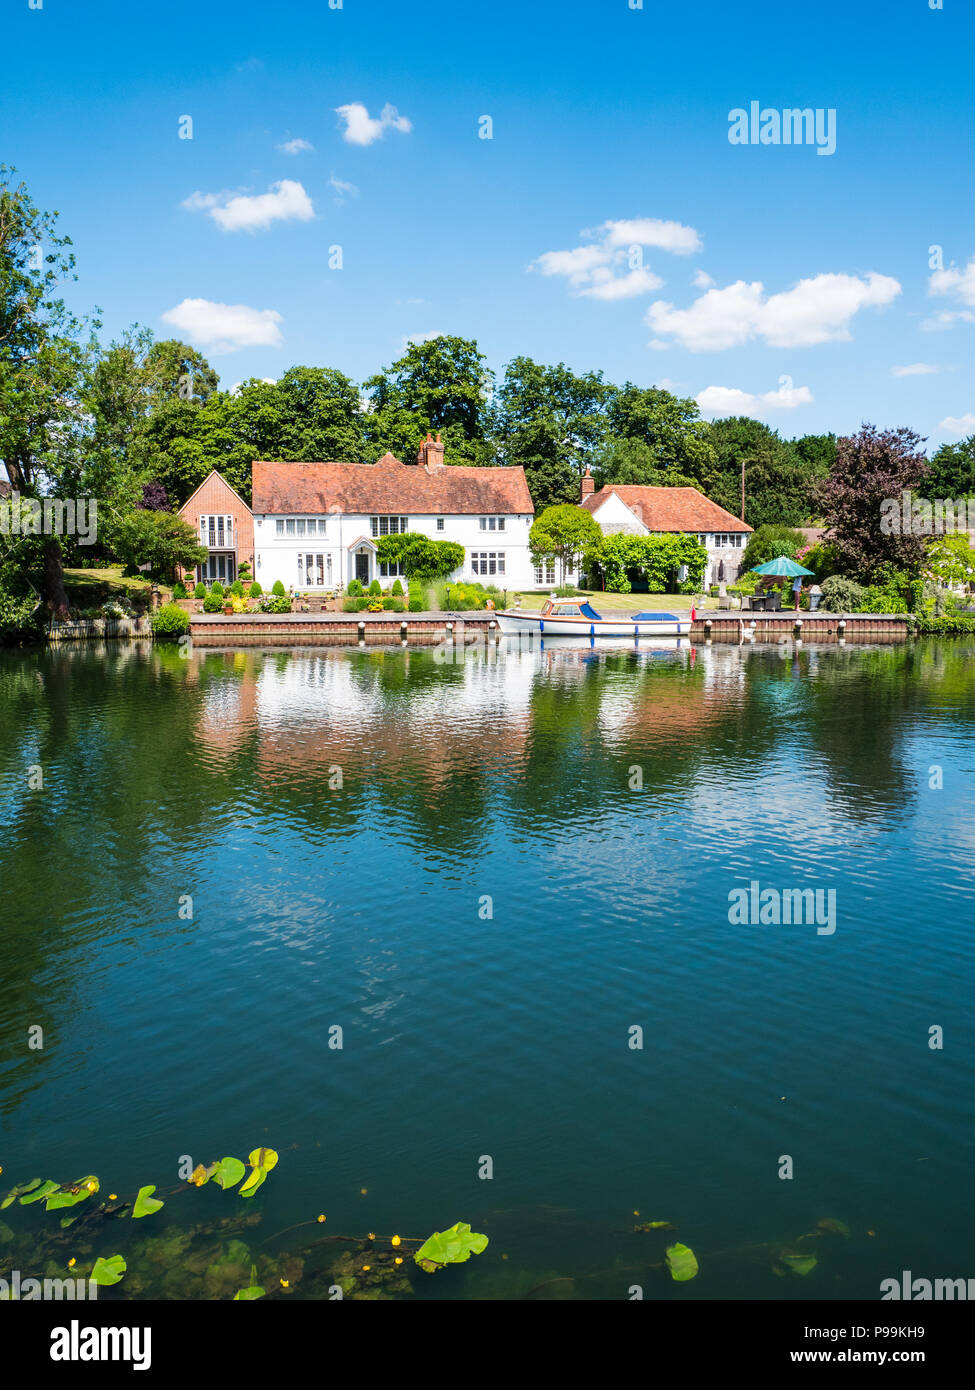 House with Boat, Hambleden Lock and Weir, River Thames, Berkshire, England, UK, GB. - Stock Image